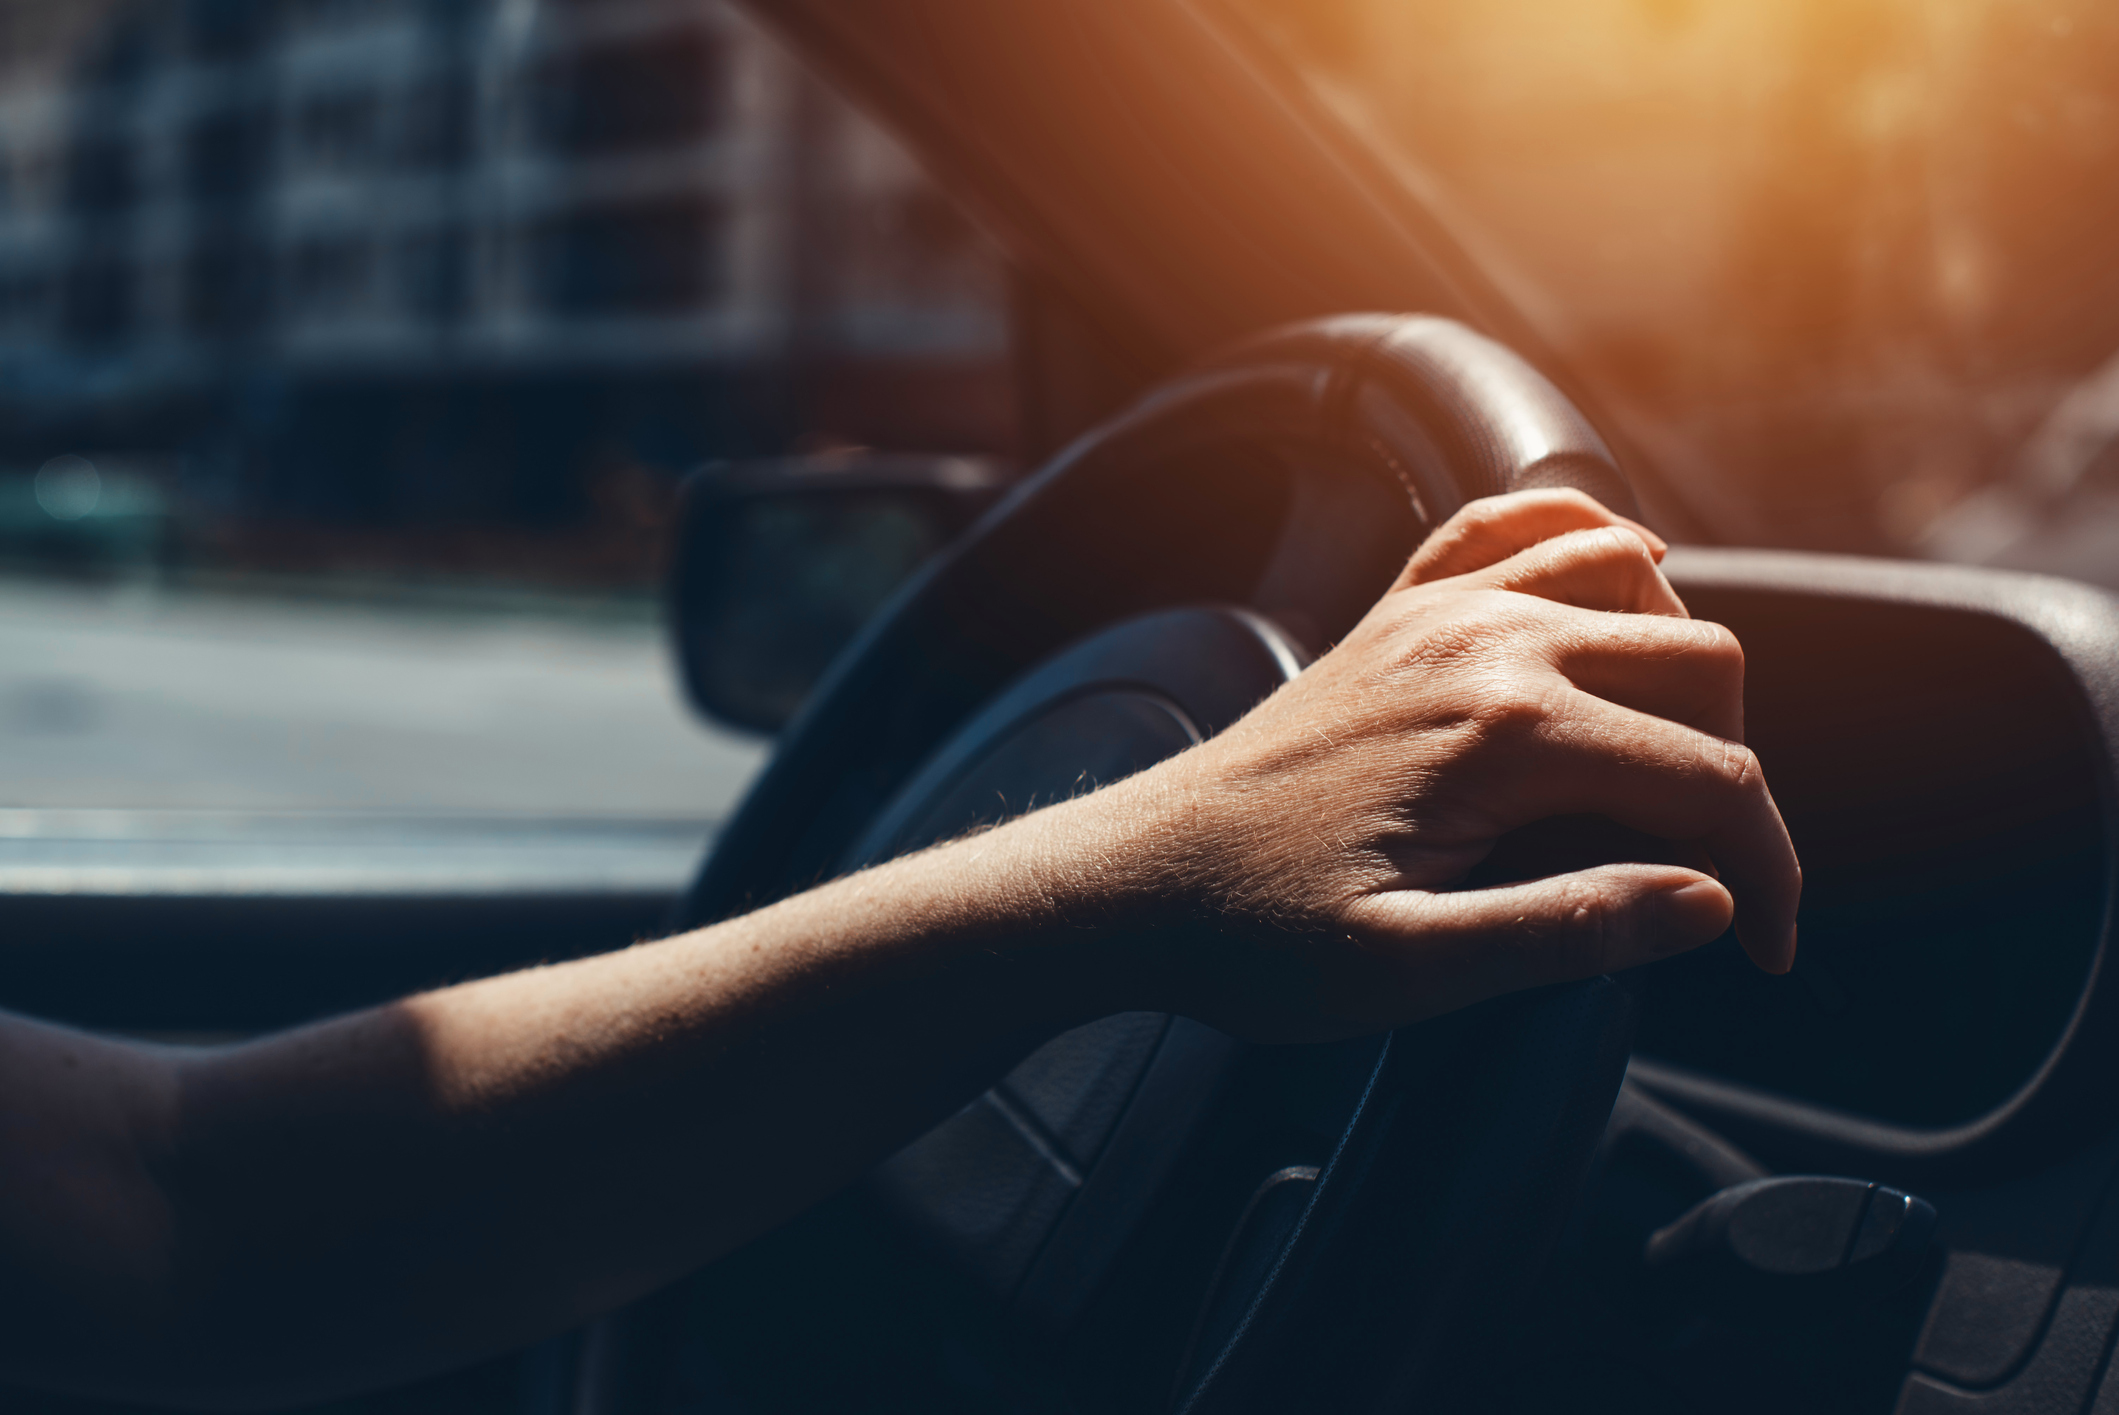 Female hand on car steering wheel, woman driving through city streets on sunny summer day